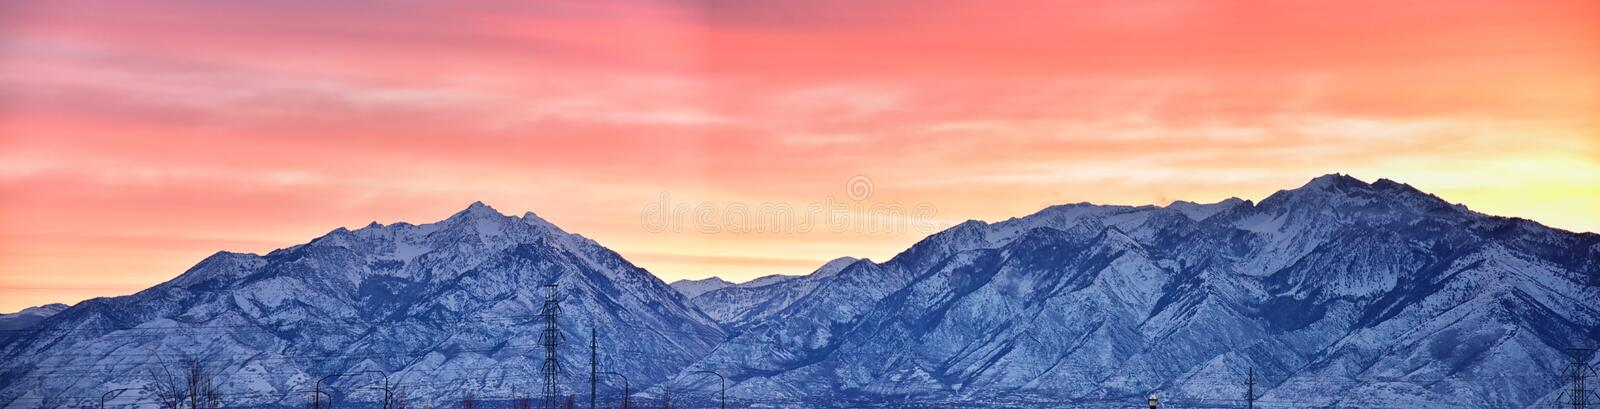 Sunrise of Winter panoramic, view of Snow capped Wasatch Front Rocky Mountains, Great Salt Lake Valley and Cloudscape from the Mou stock images